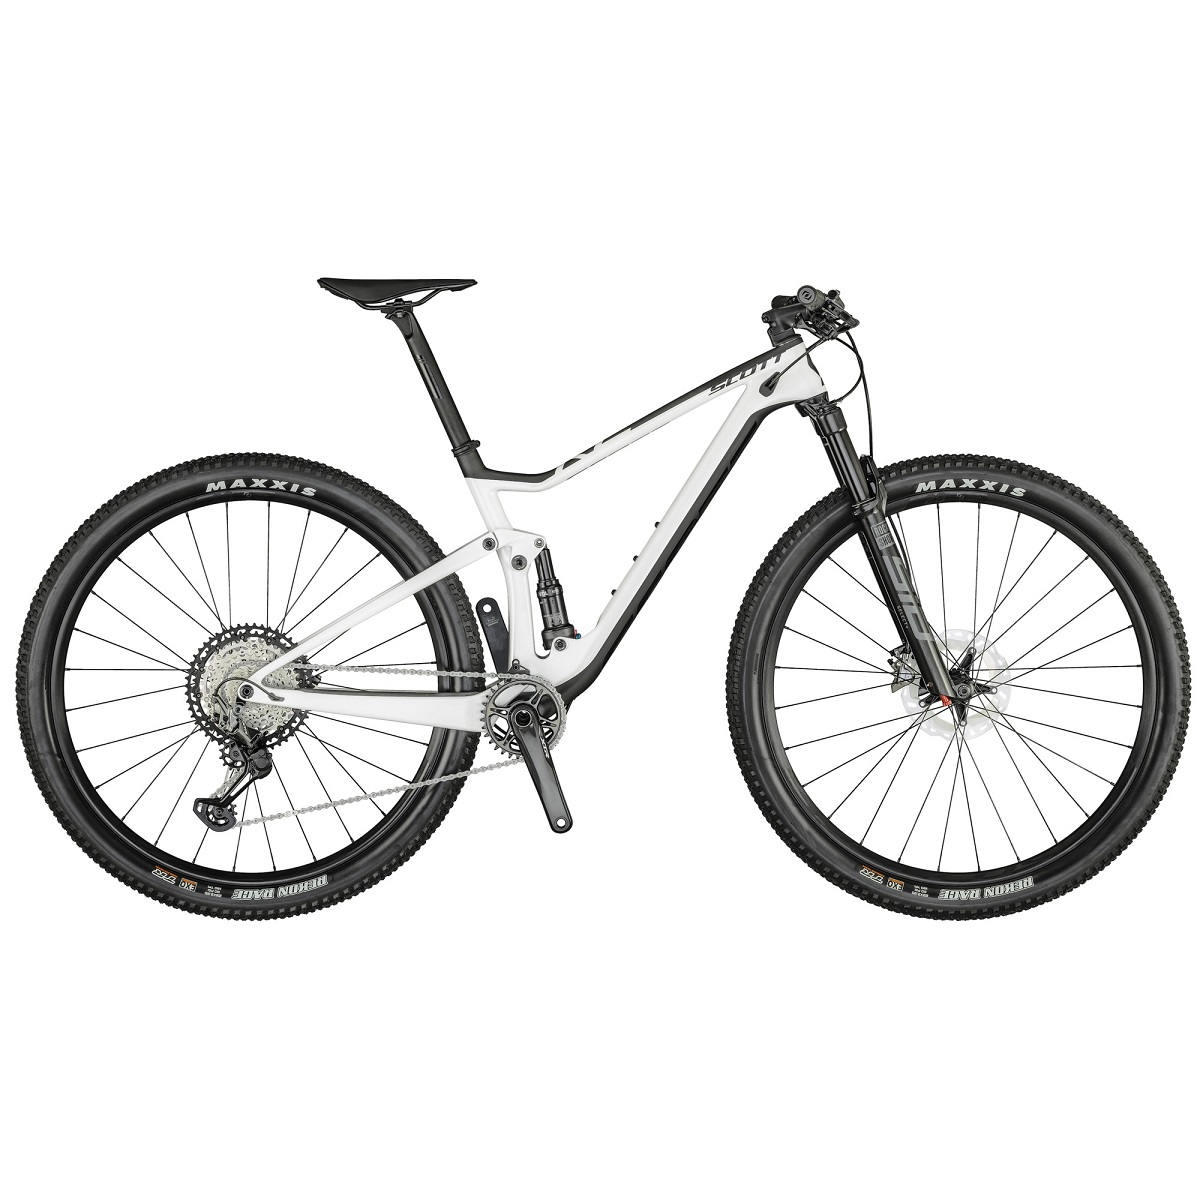 2021 Scott Spark RC 900 Pro Mountain Bike